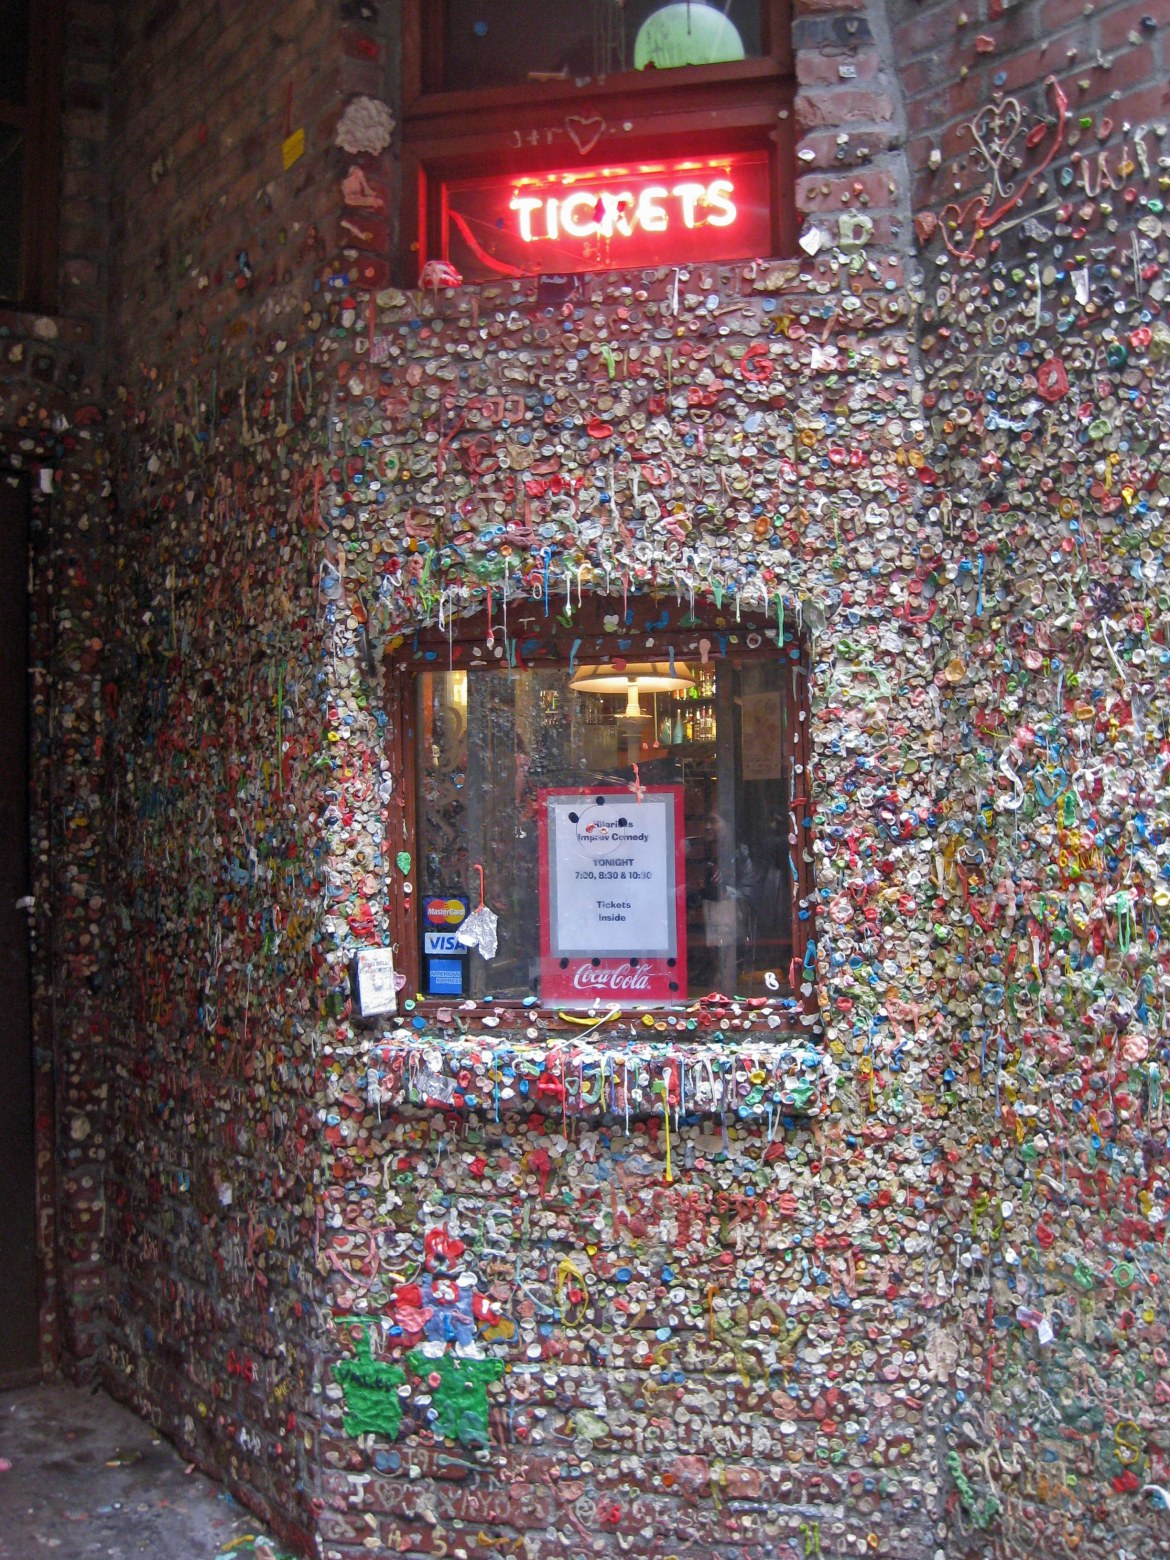 A sticky situation, buying tickets at Market Theater – now covered in chewing gum <br data-recalc-dims=